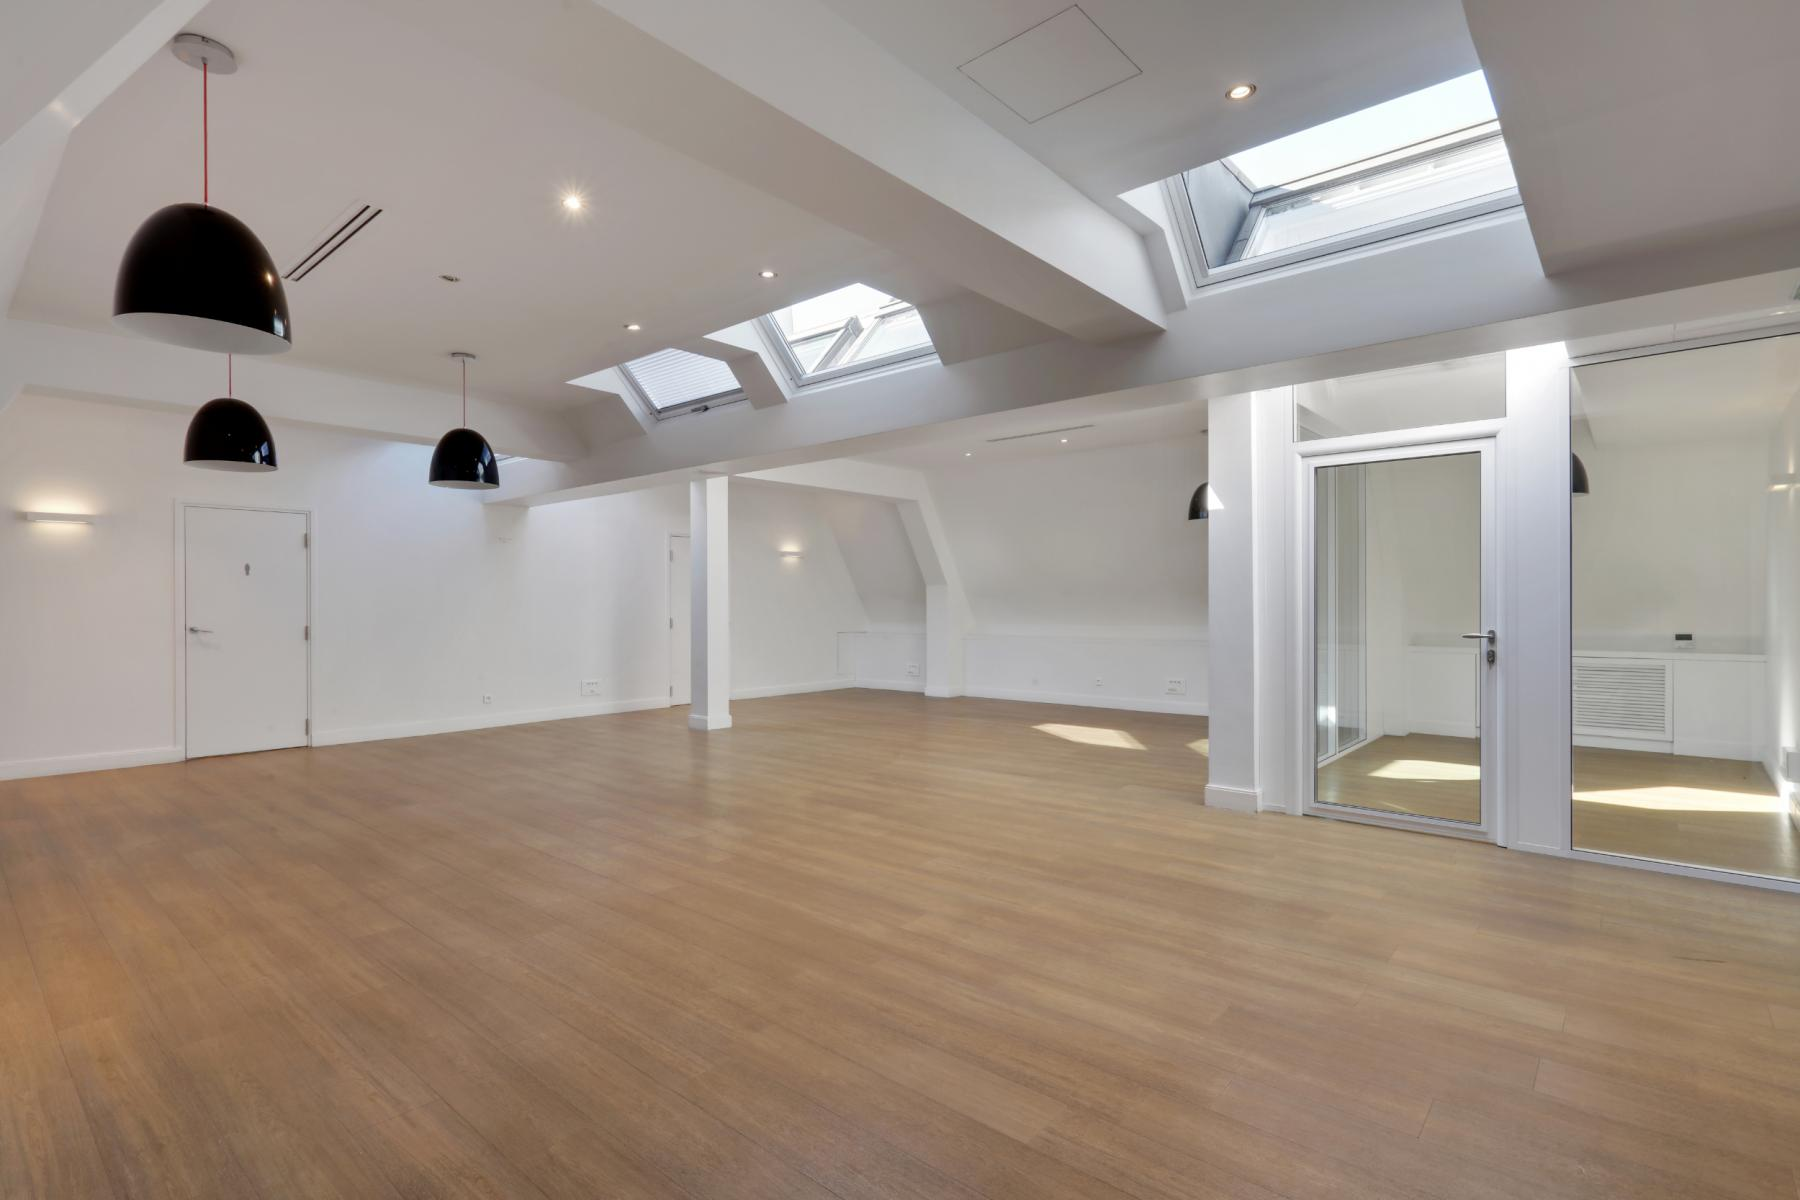 This spacious office space could accommodate your team